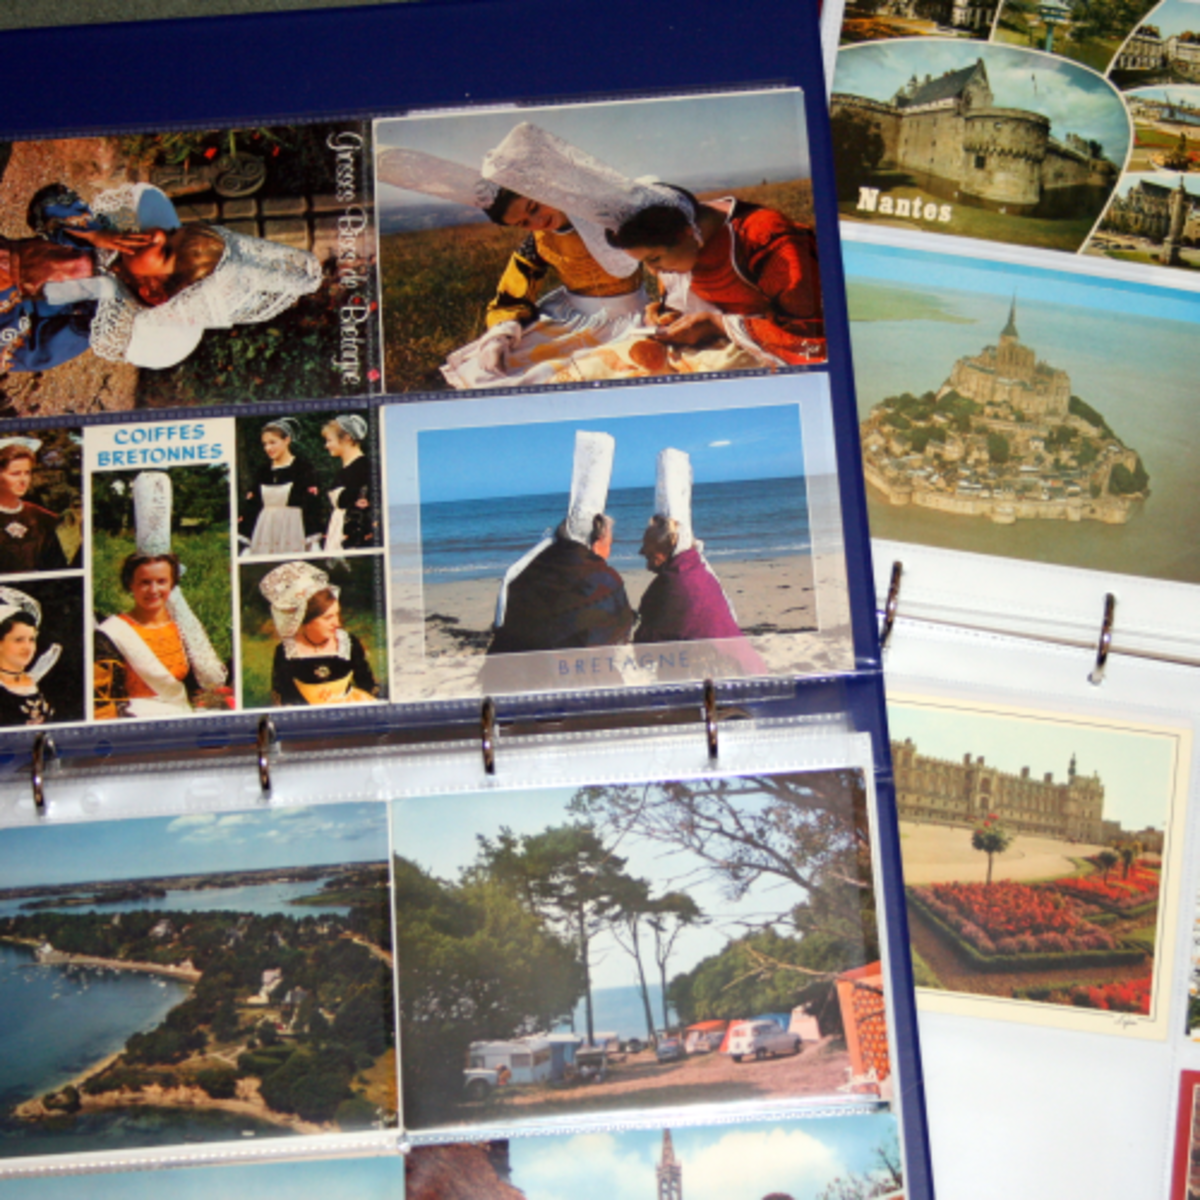 Two albums of postcards from France